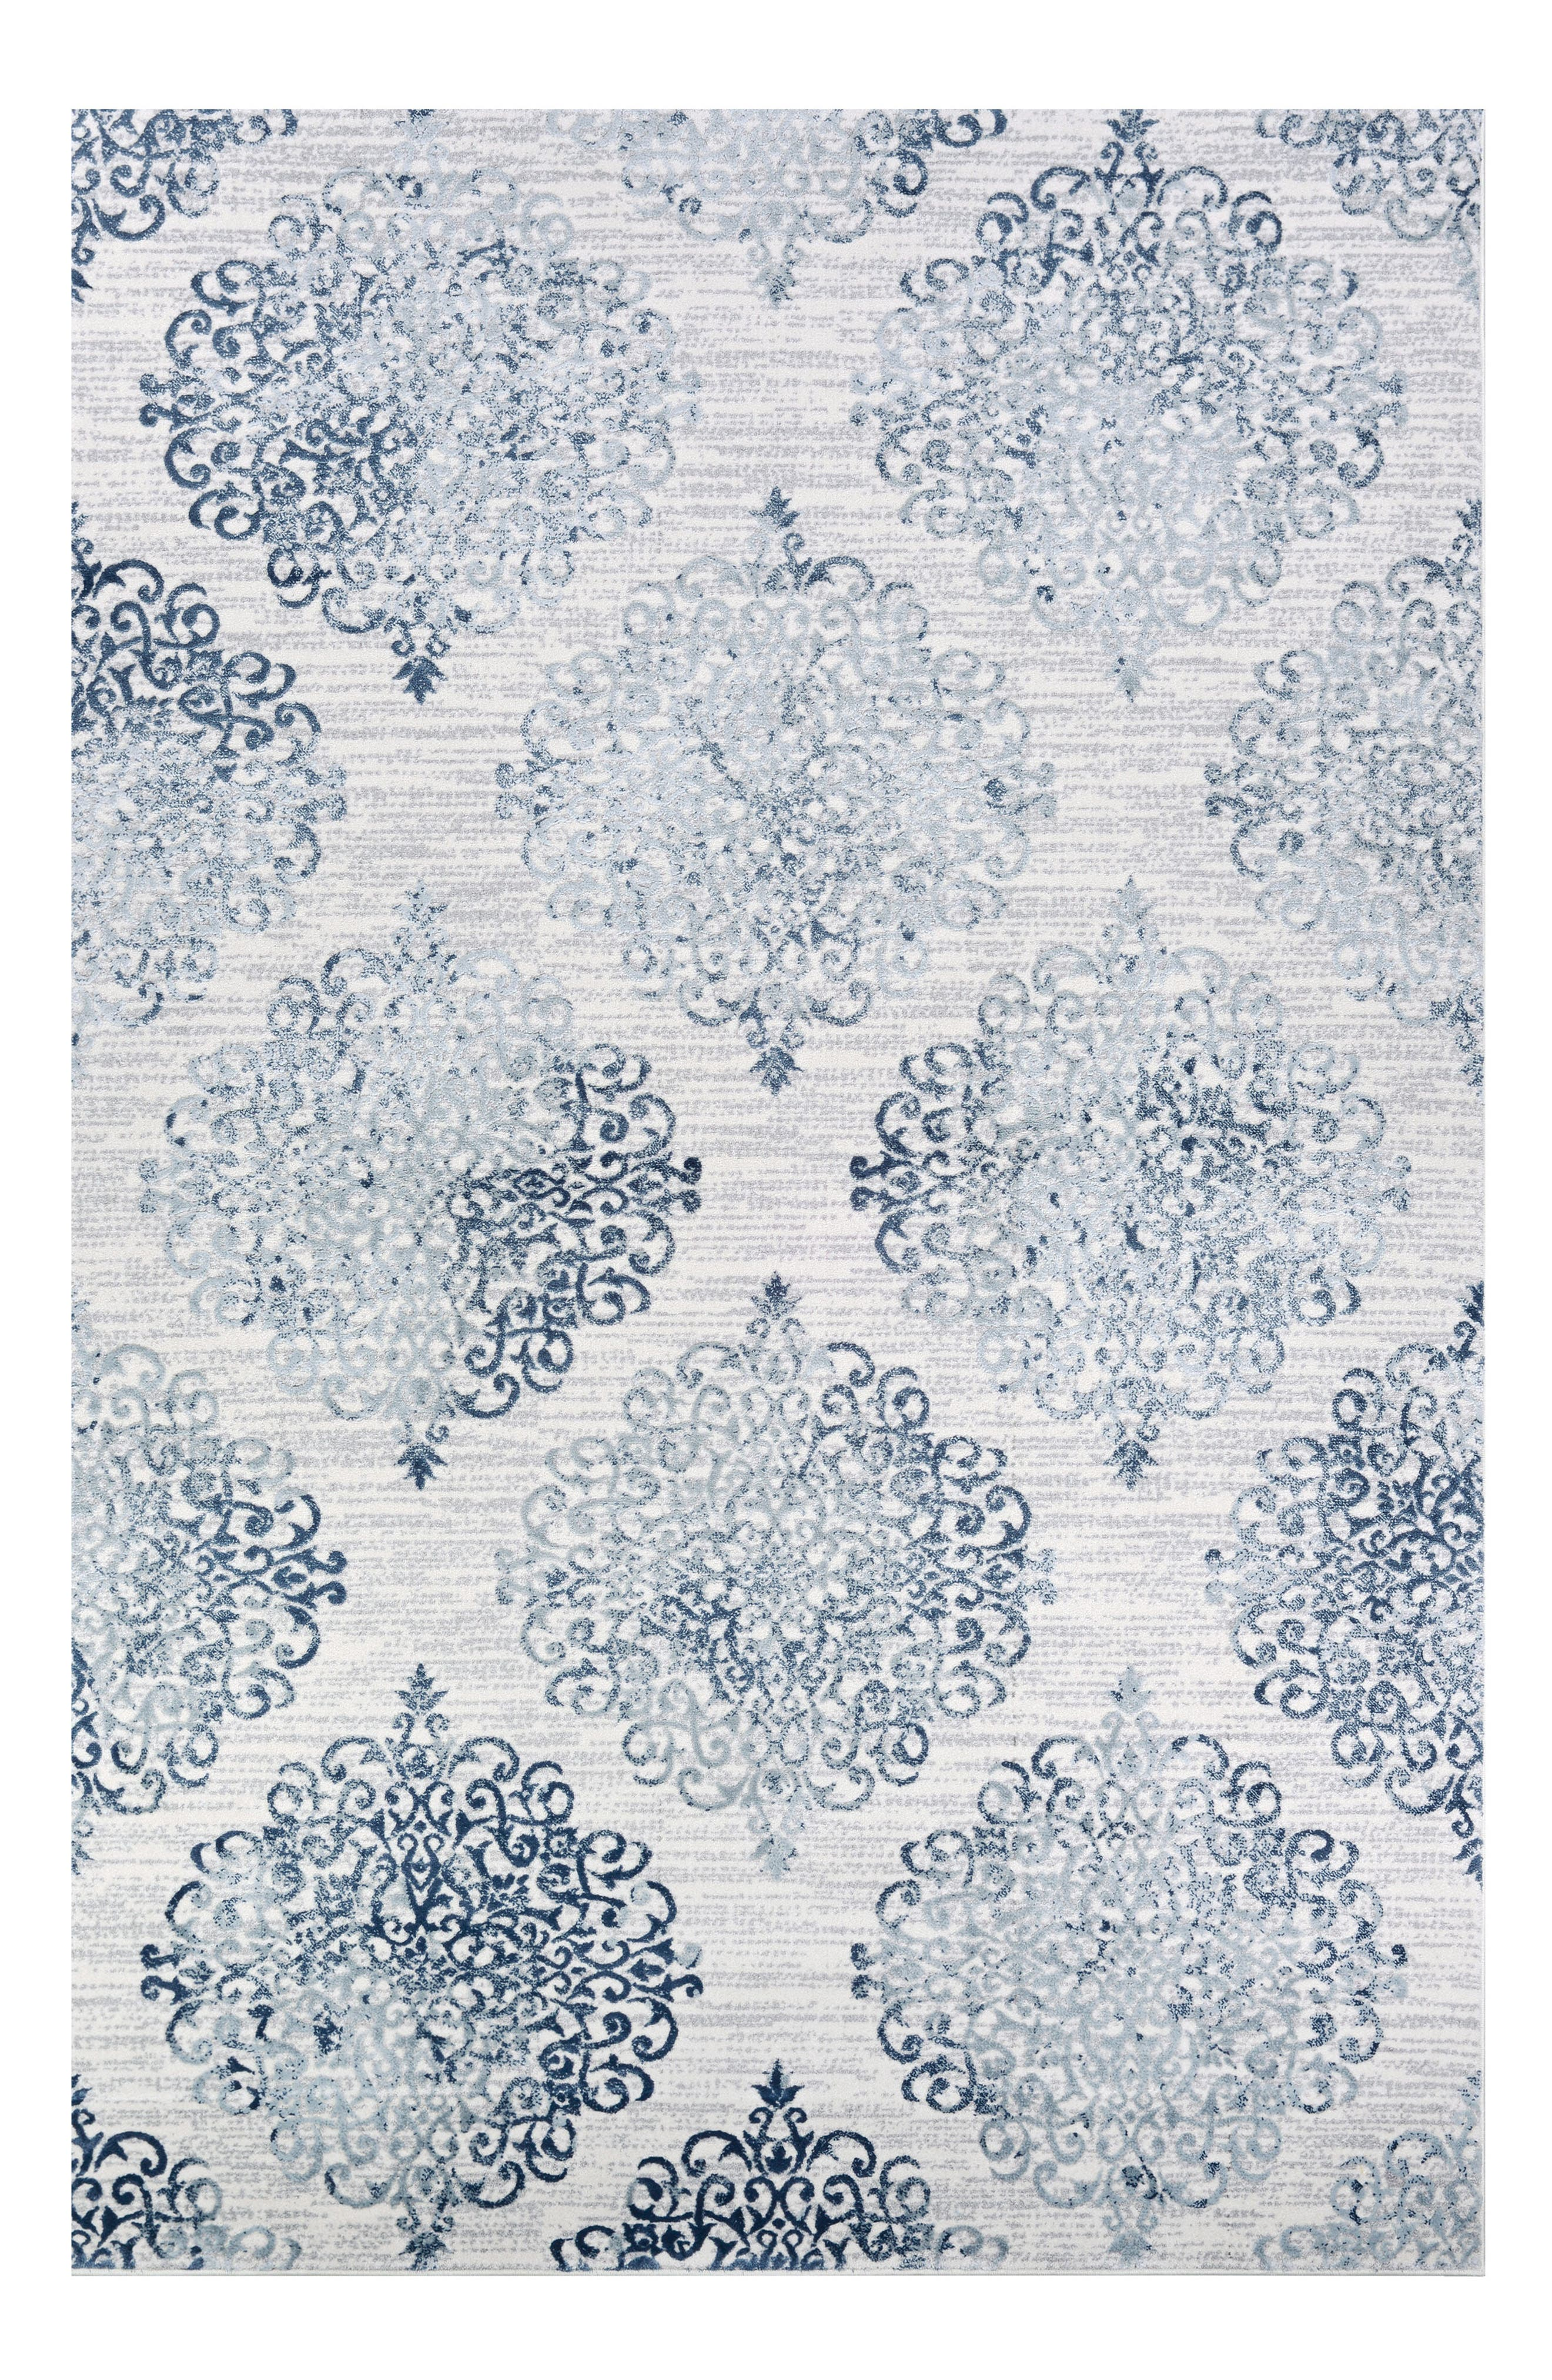 Calinda Collection Marlowe Rug,                             Main thumbnail 1, color,                             STEEL BLUE - IVORY